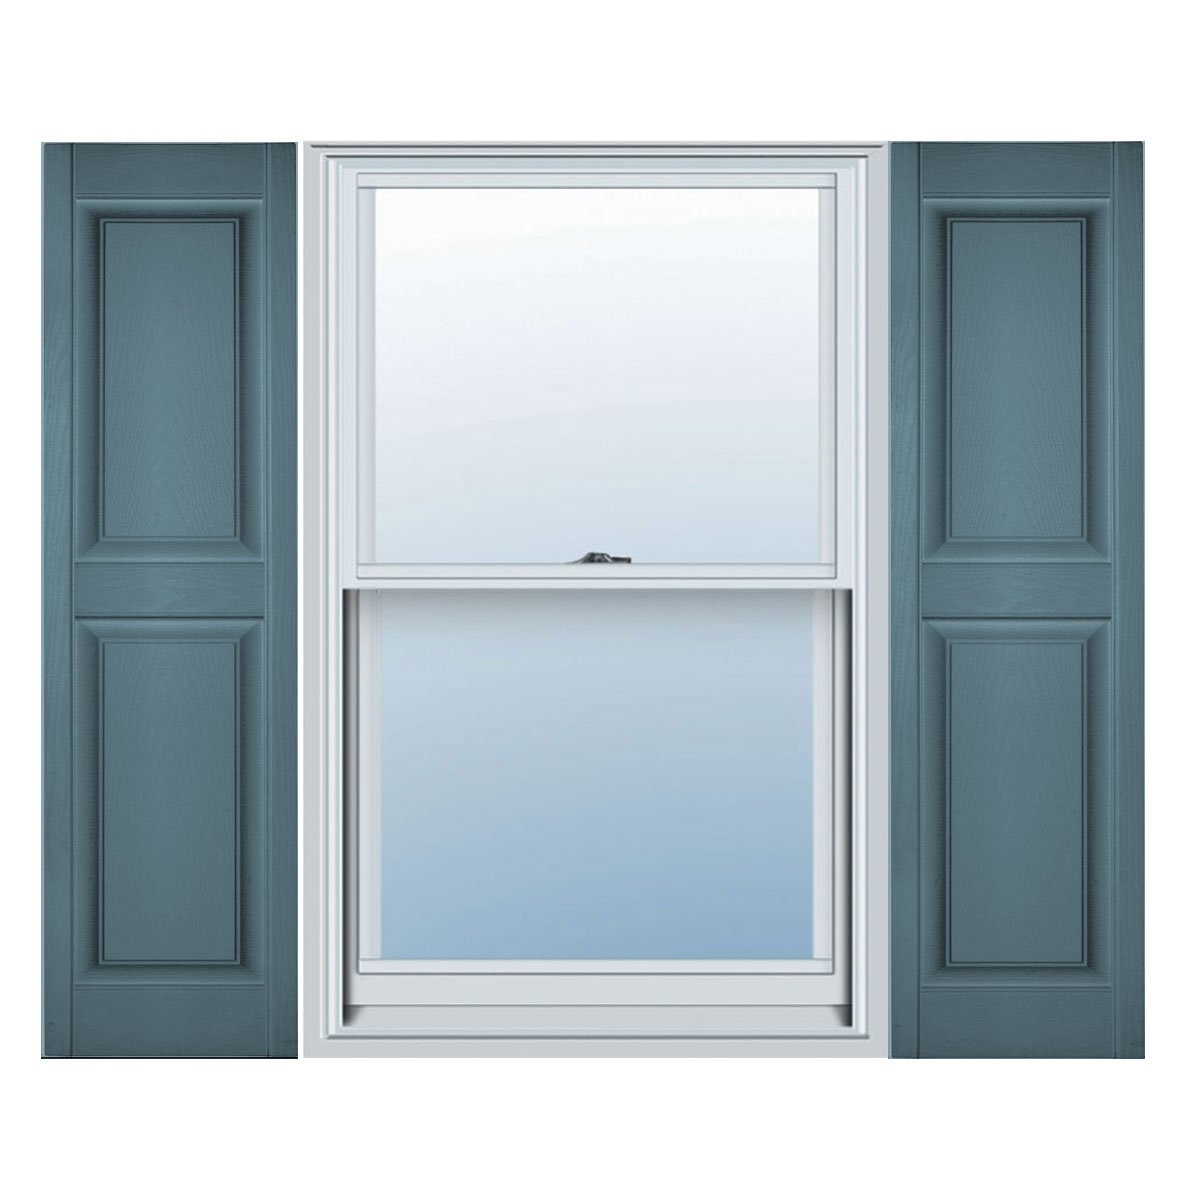 Builders Edge 15 in. Vinyl Raised Panel Shutters in Wedgewood Blue - Set of 2 (14.75 in. W x 1 in. D x 54.8125 in. H (7.3 lbs.))